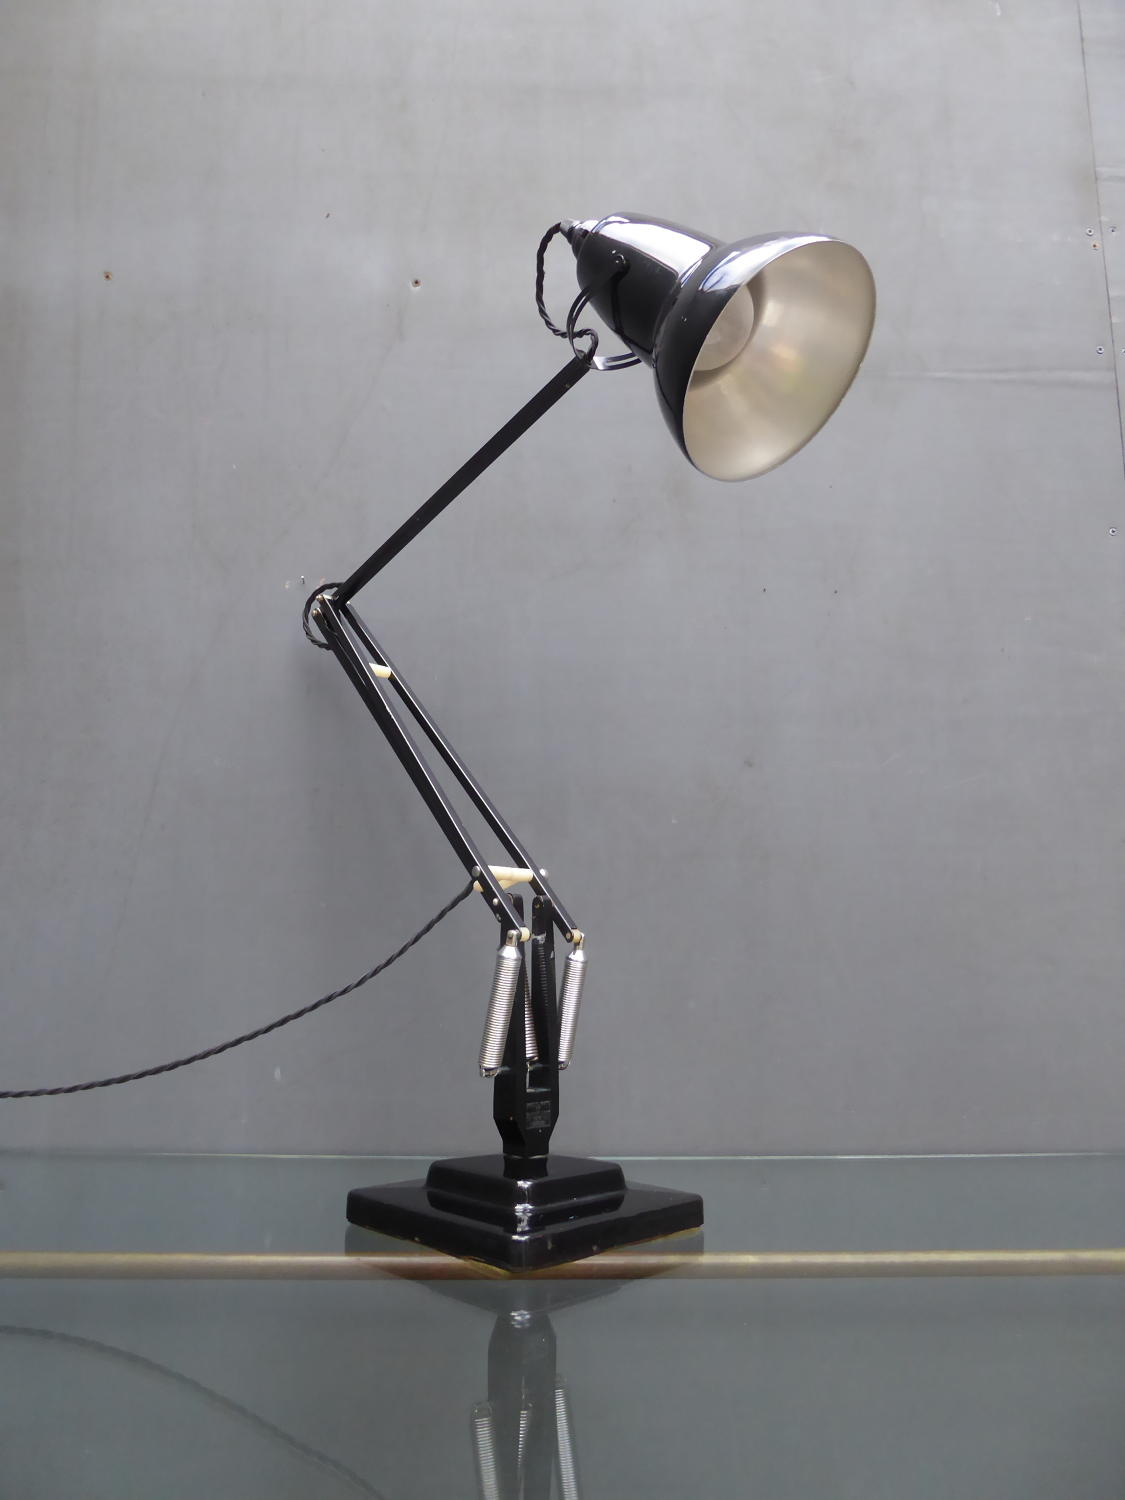 Black Herbert Terry Anglepoise 1227 Lamp